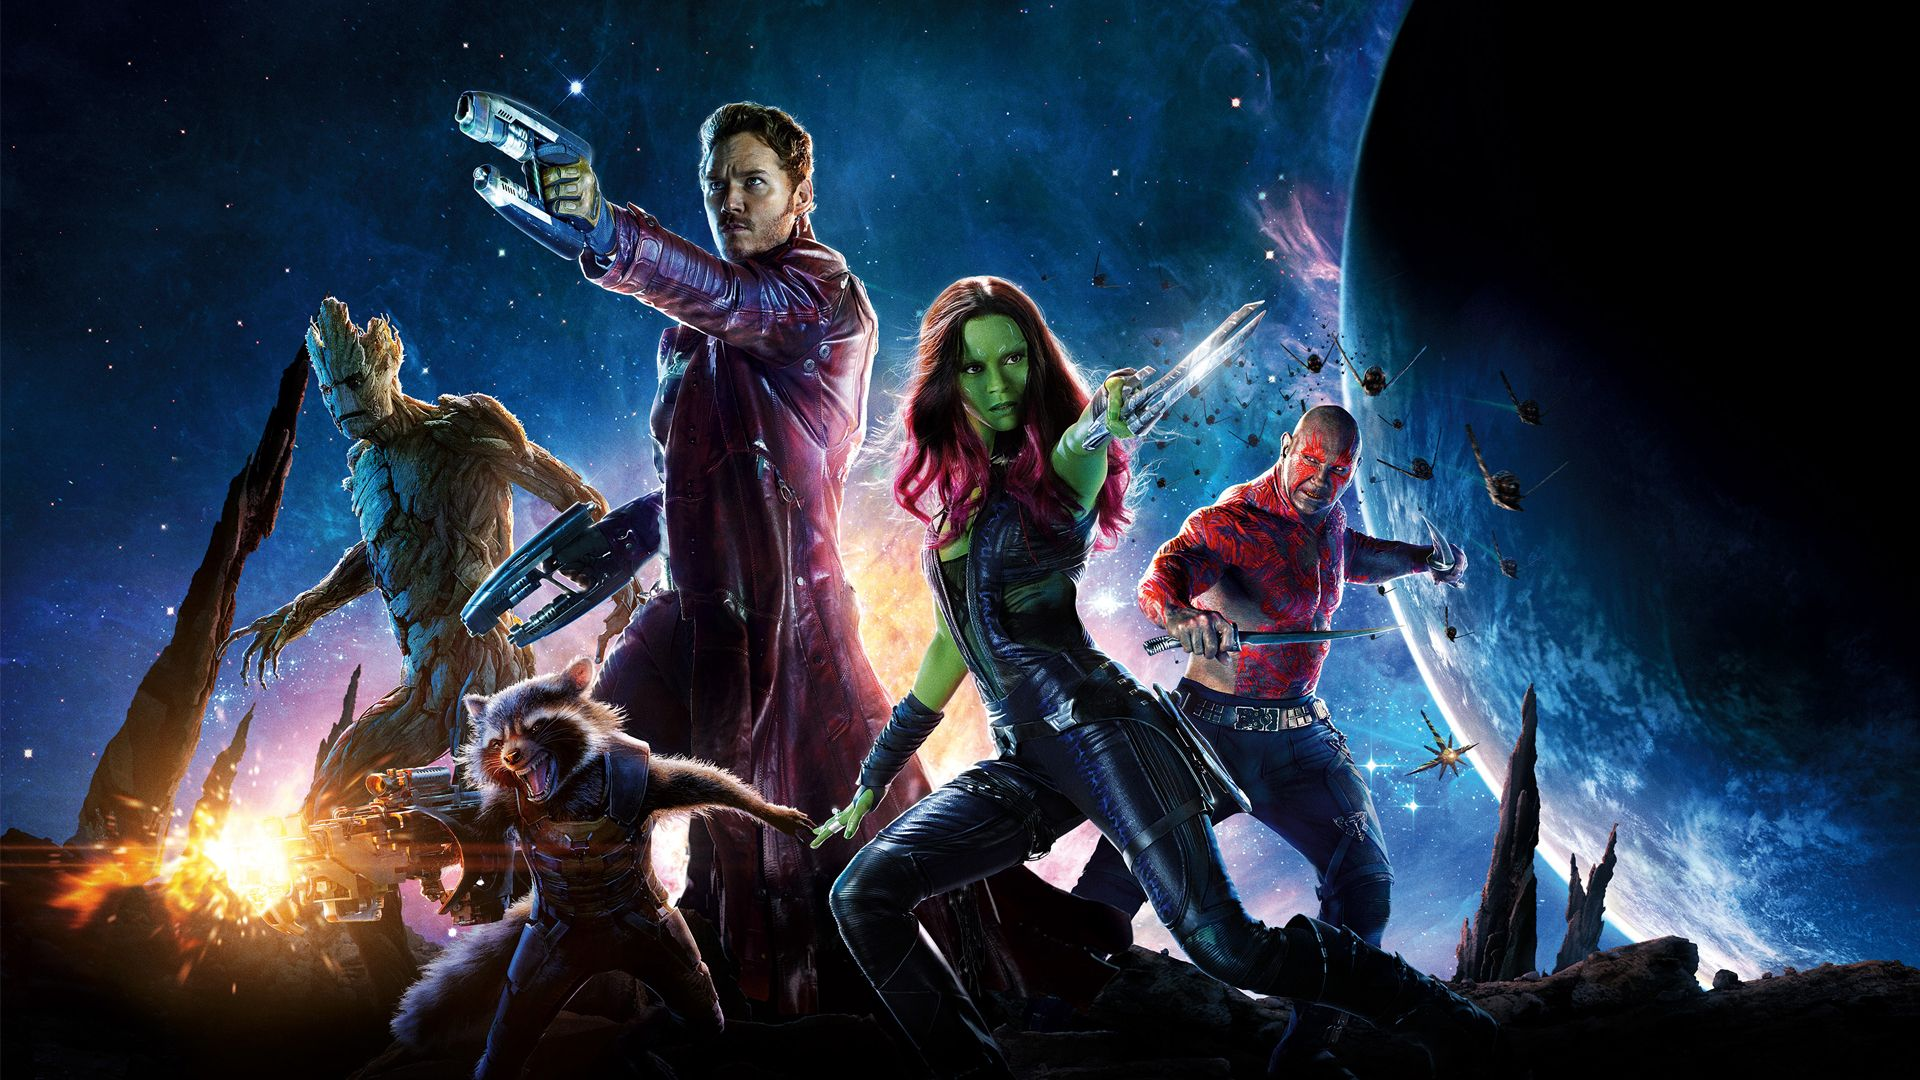 Why You Need To See Guardians Of The Galaxy No Spoilers Guardians Of The Galaxy Galaxy Movie Best Superhero Movies